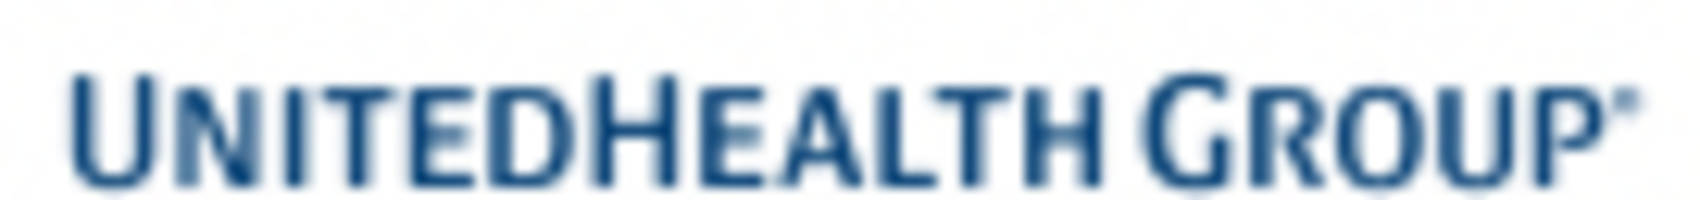 civic 50 ranks unitedhealth group one of america's 50 most community-minded companies